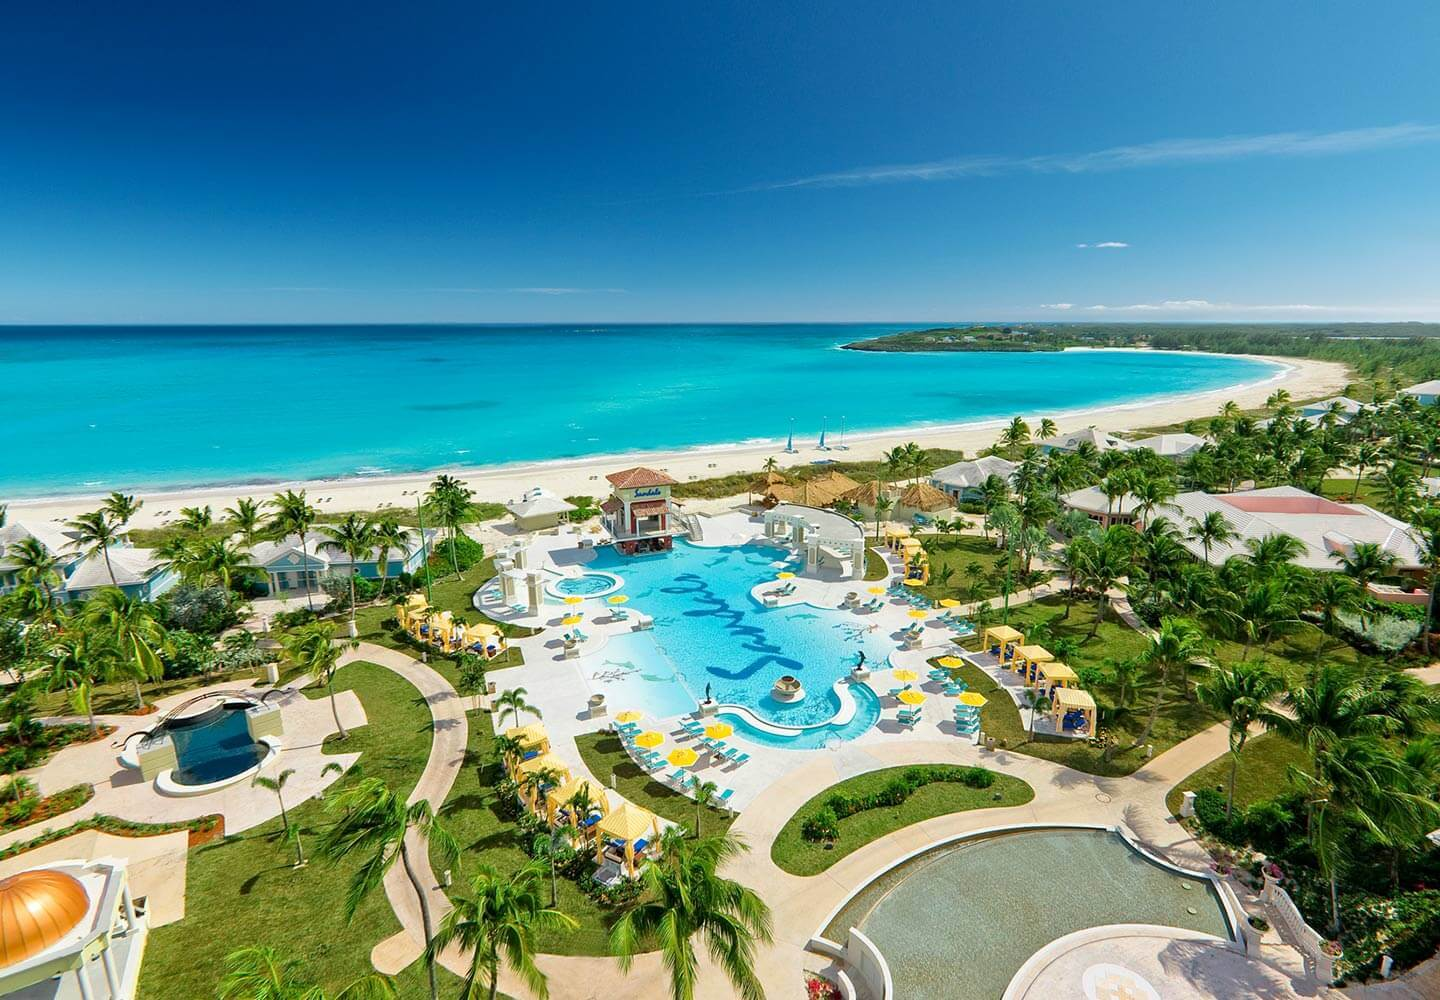 Sandals Emerald Bay - Grand Bahama Vacations